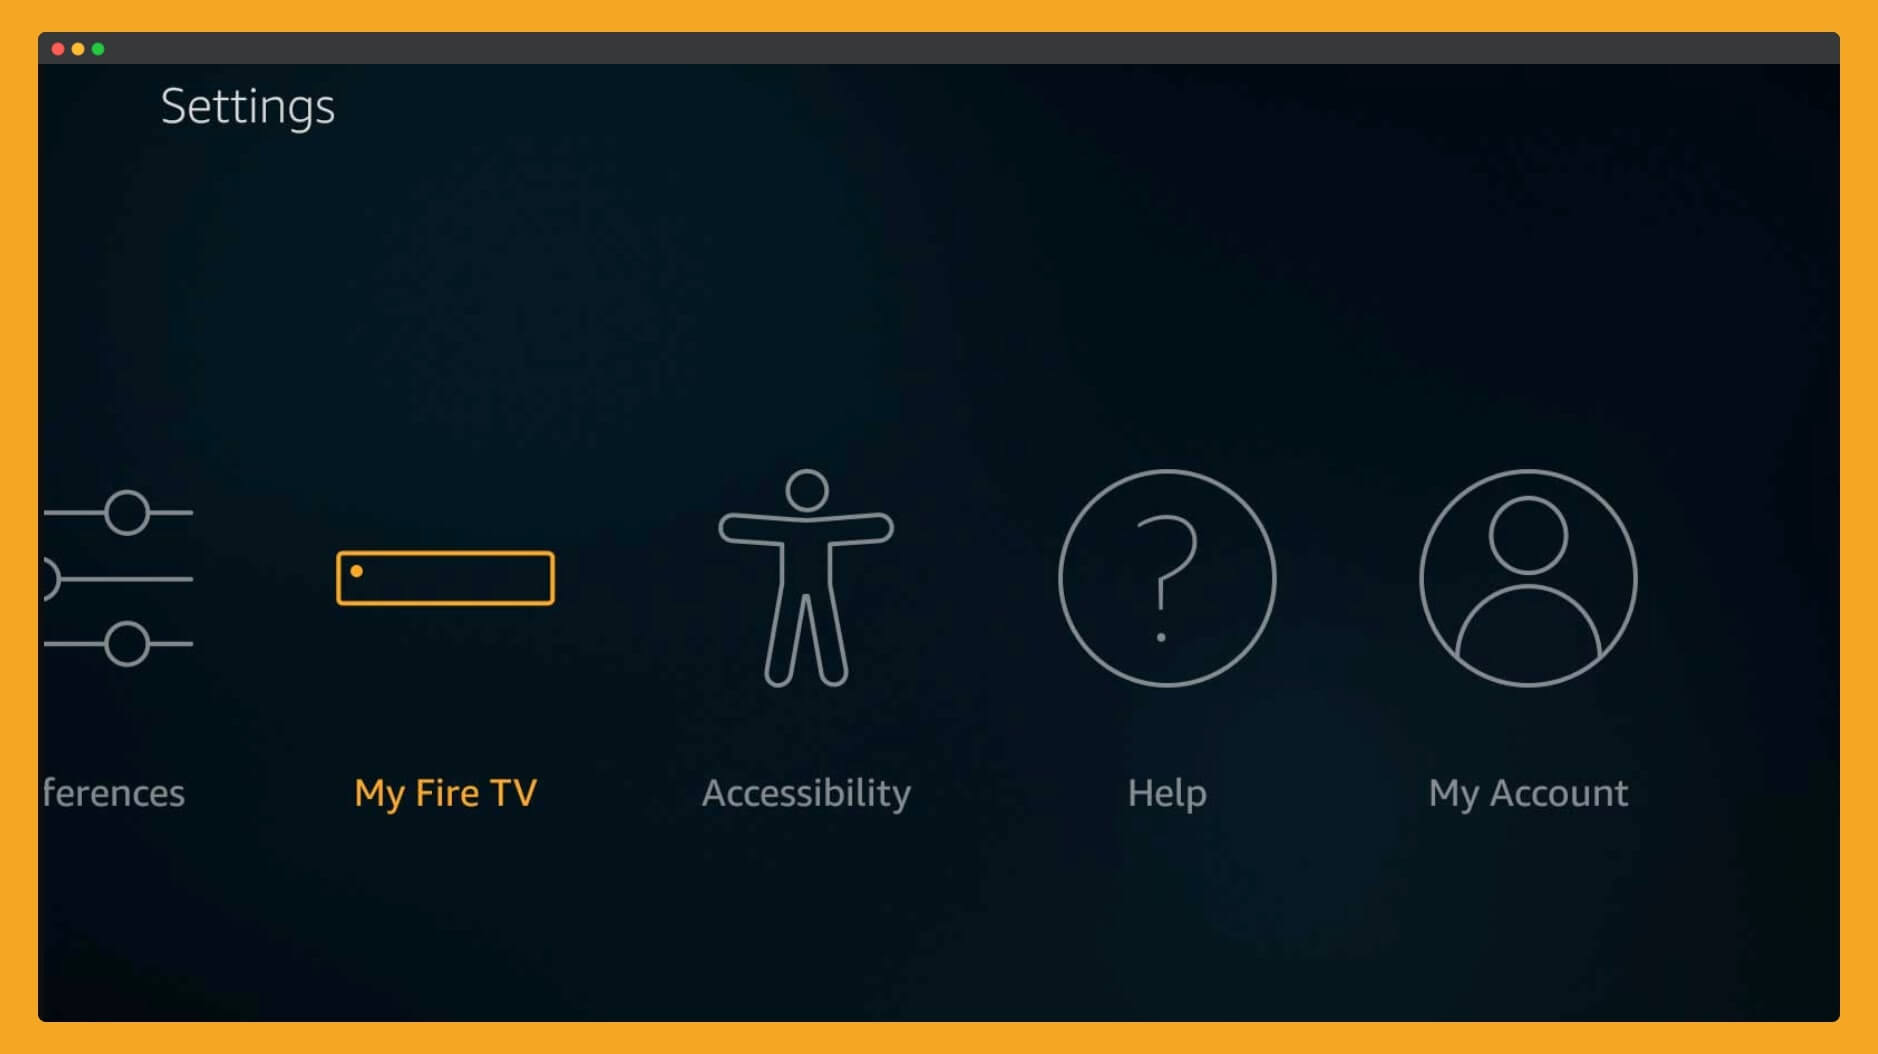 click-on-My-Fire-TV-section